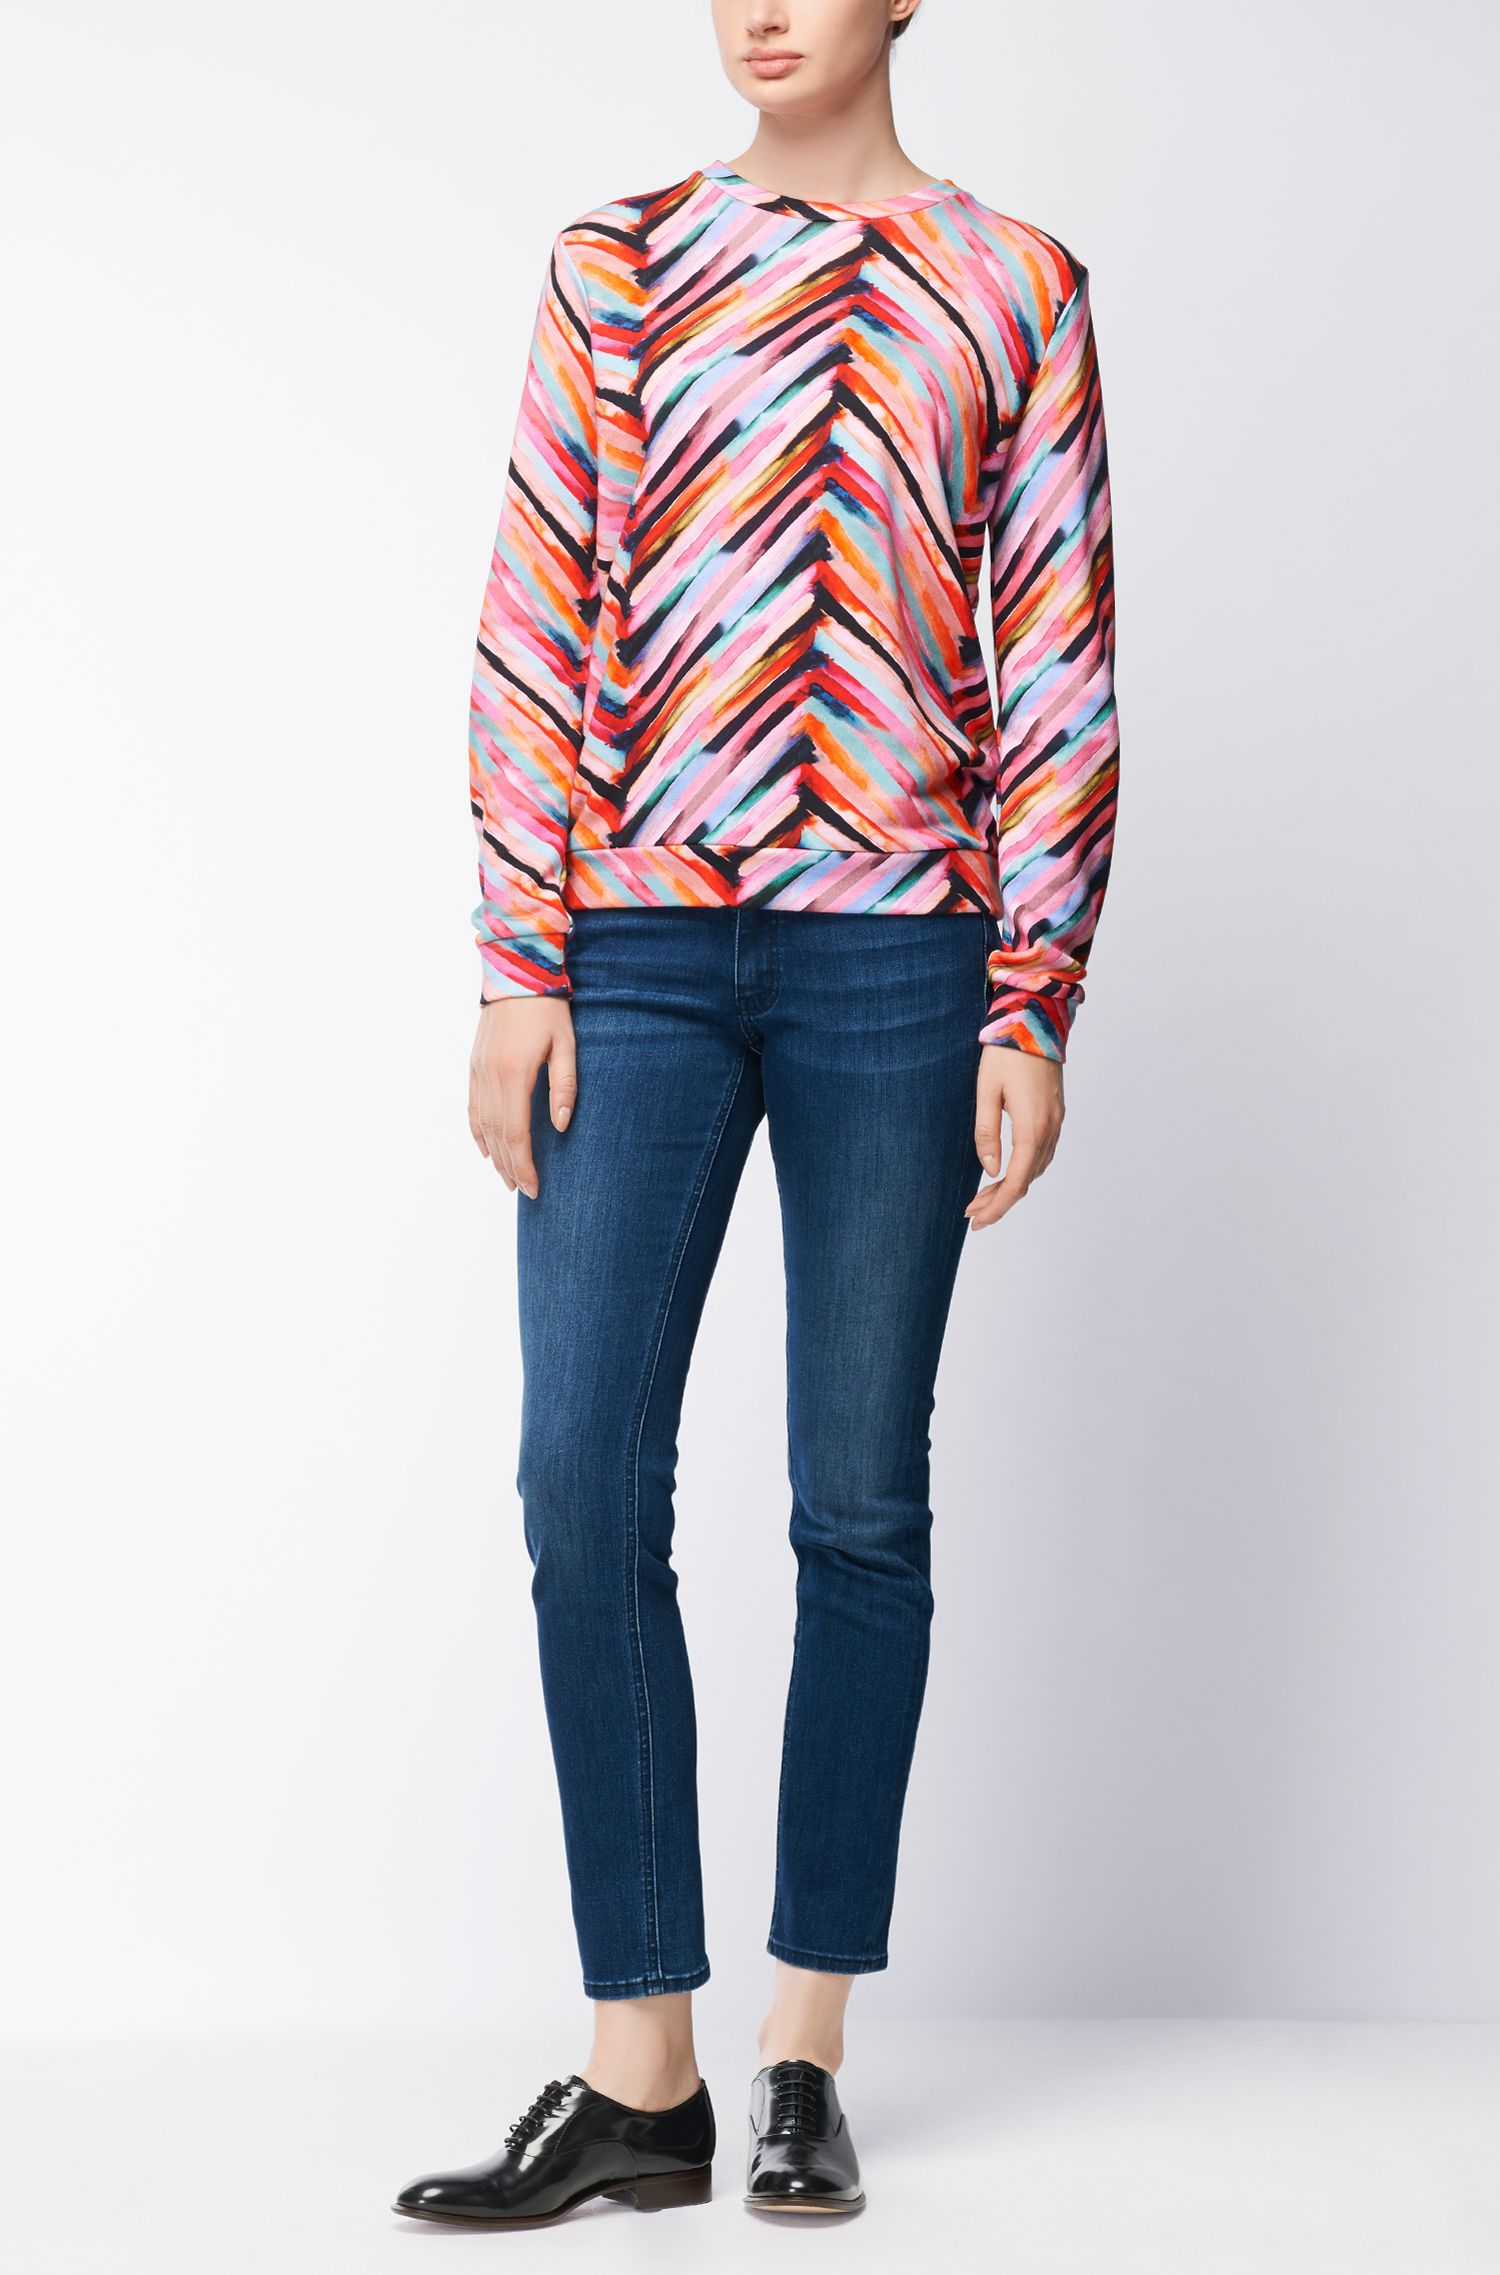 Multi-coloured sweater in terry cotton blend, Patterned